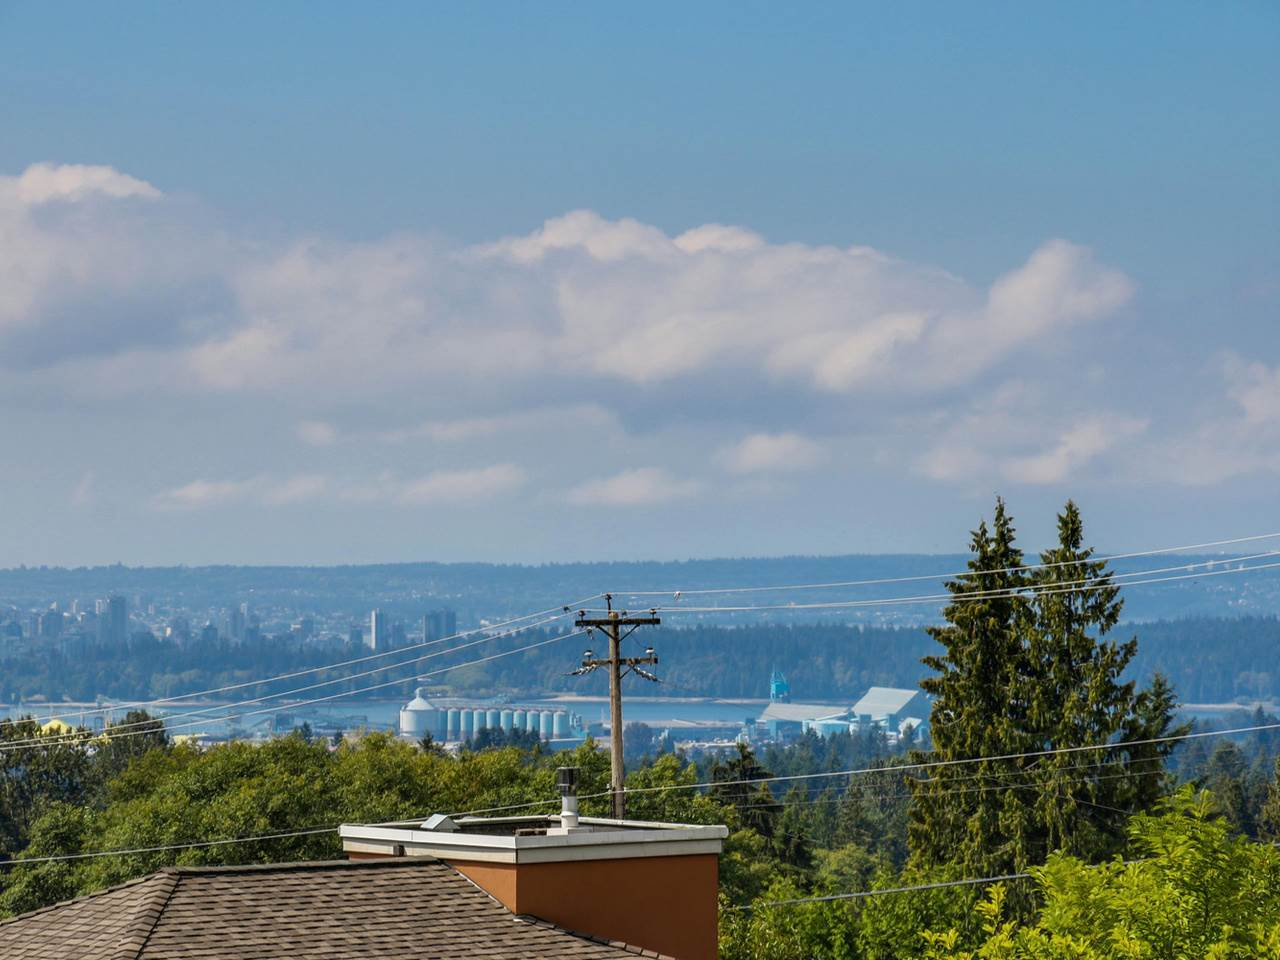 Main Photo: 3889 DALKEITH Drive in North Vancouver: Upper Lonsdale House for sale : MLS®# R2098321